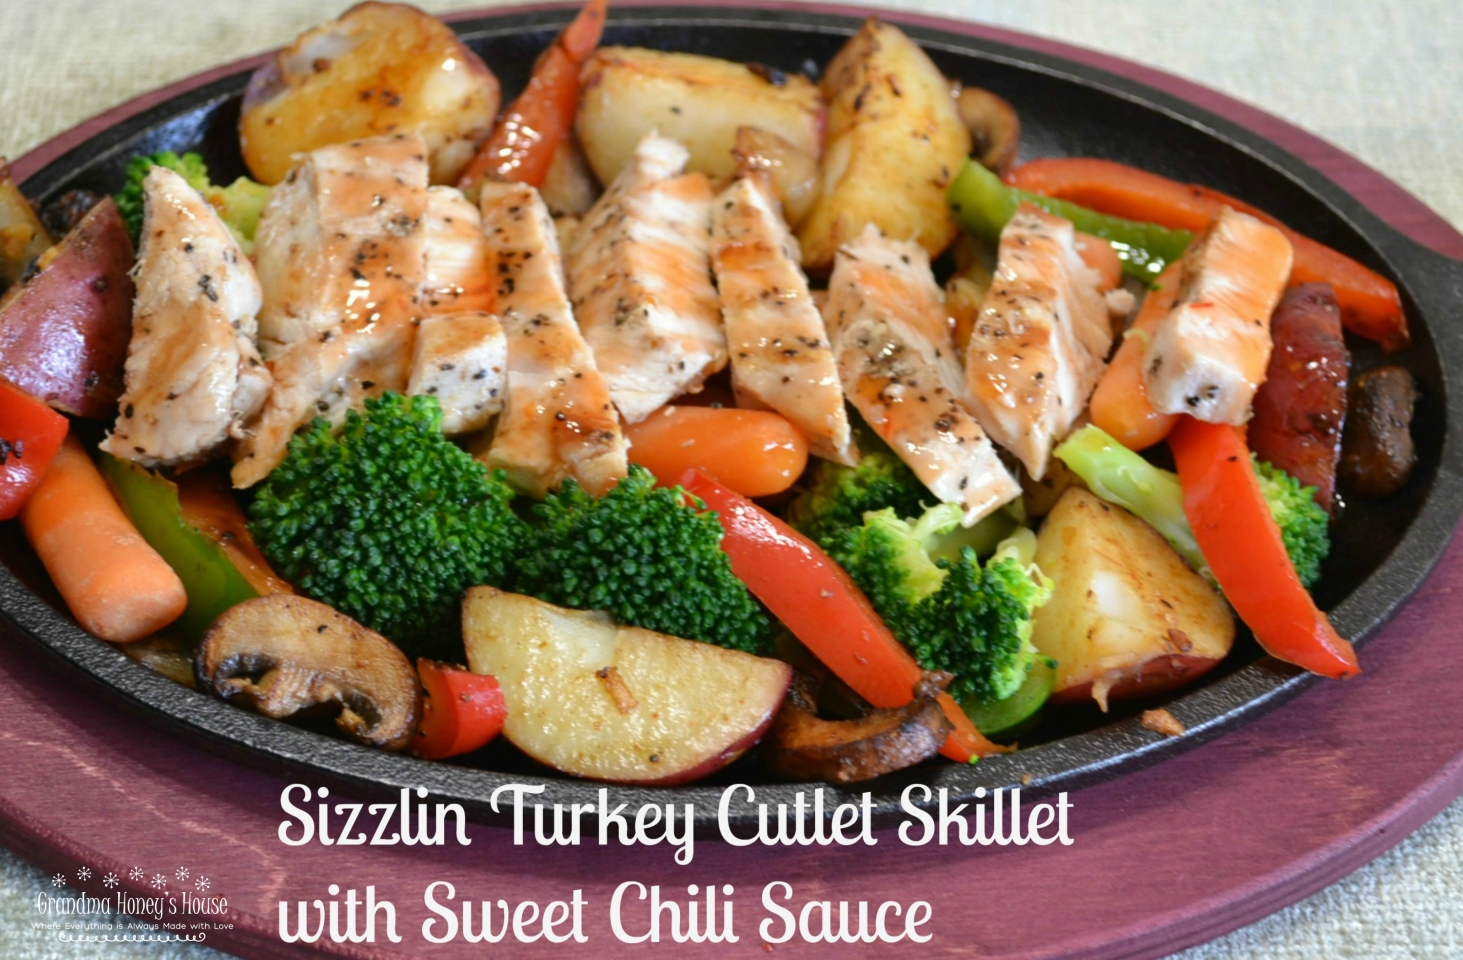 A healthy, colorful skillet dinner of fresh veggies, grilled turkey cutlets served on a cast iron skillet and drizzled with sweet chilli sauce.